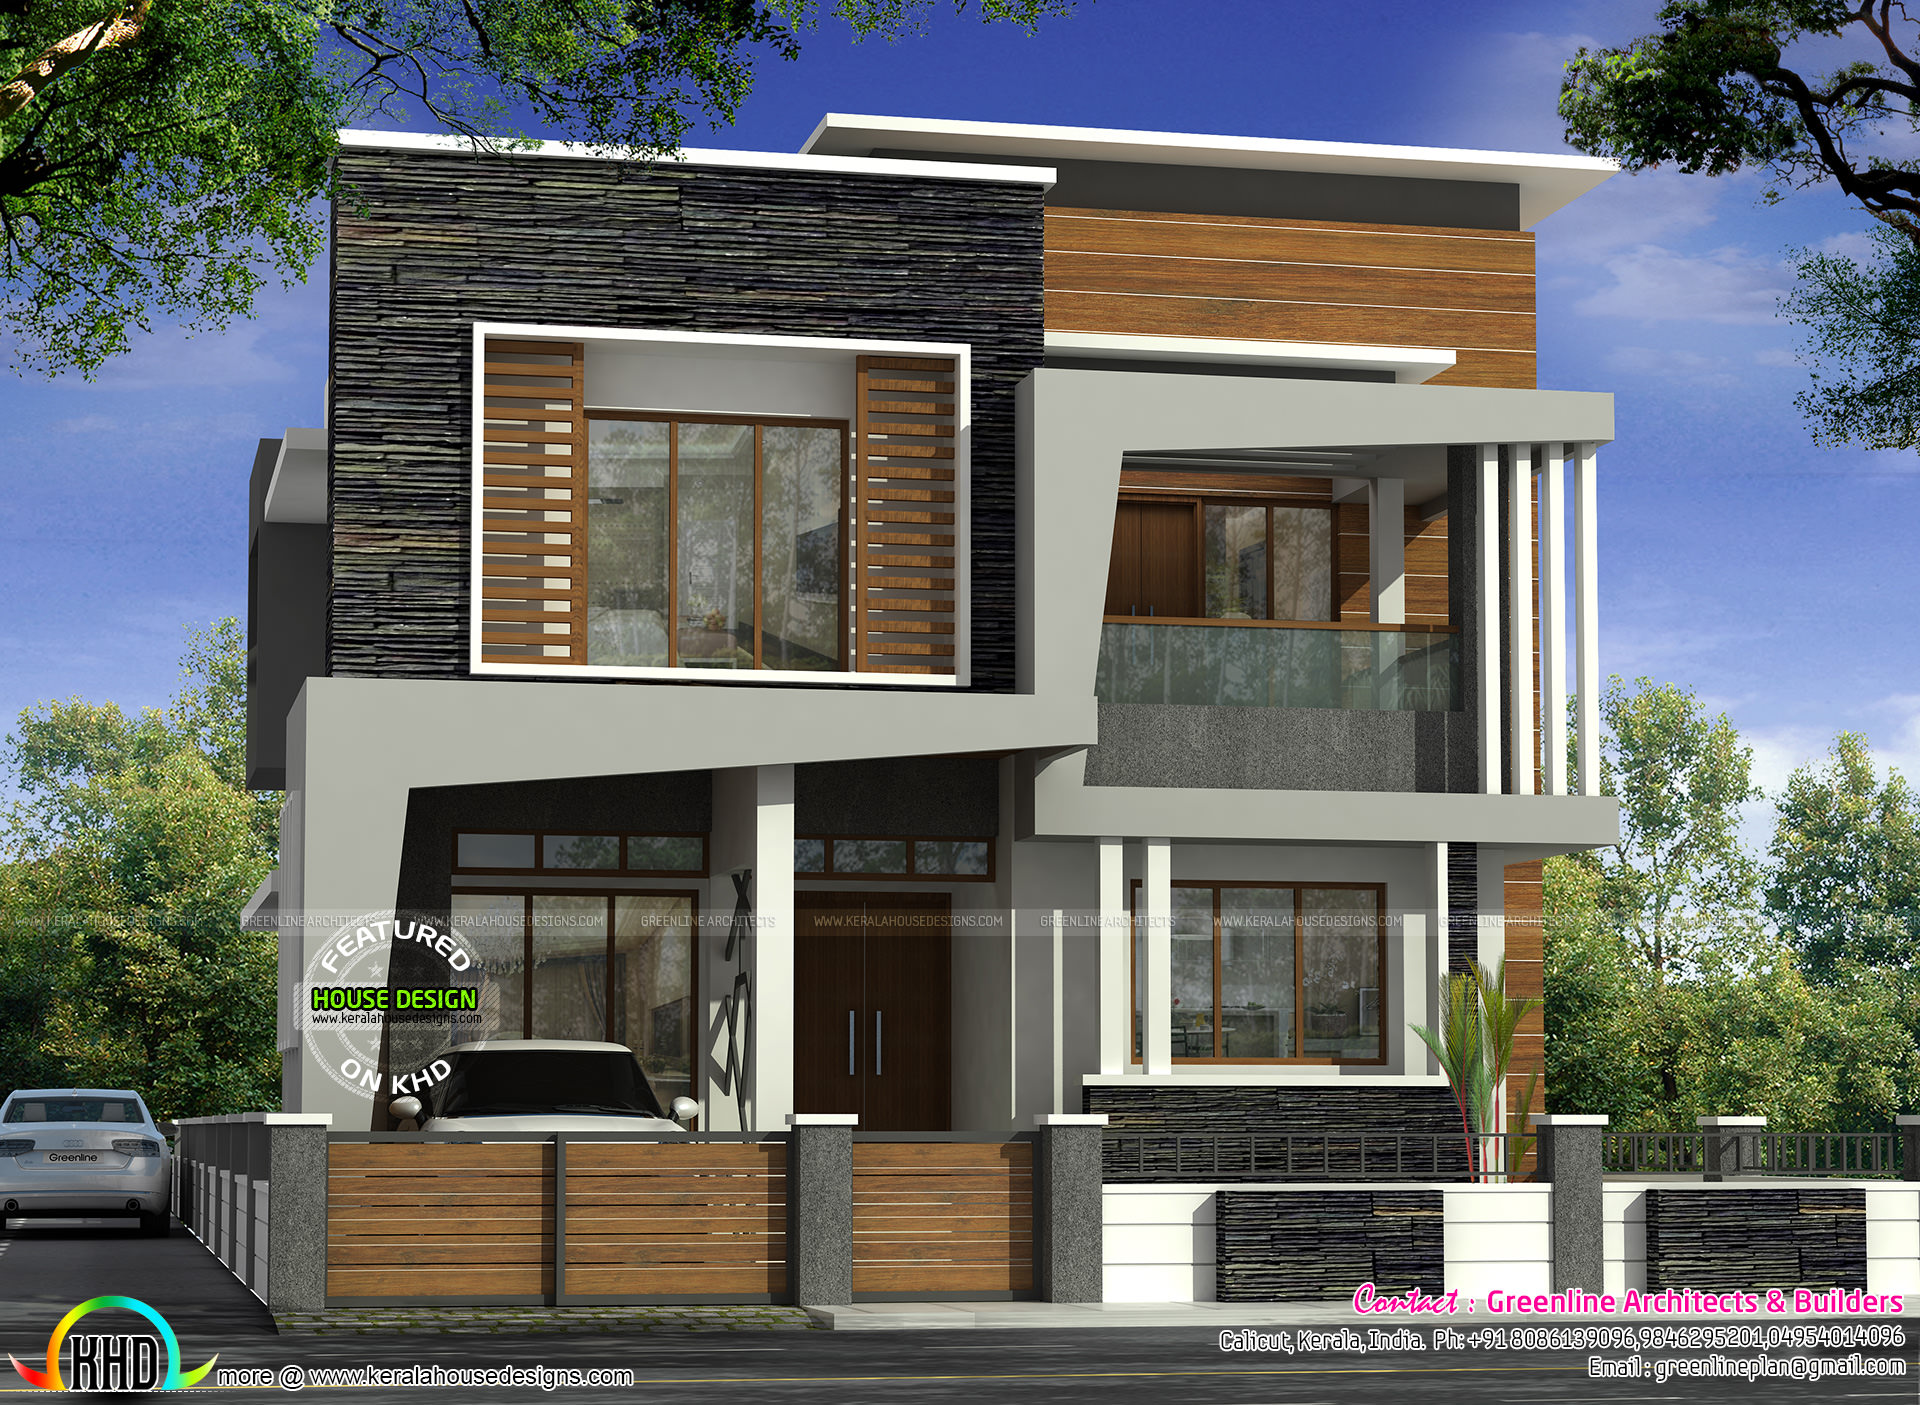 Kerala Home Design 700 Sq Ft Part - 19: Ground Floor Area : 800 Sq.Ft. First Floor Area : 700 Sq.Ft. Total Area :  1500 Sq.Ft. No. Of Bedrooms : 3. No. Of Bathrooms : 3. Porch : 1. Design  Style ...